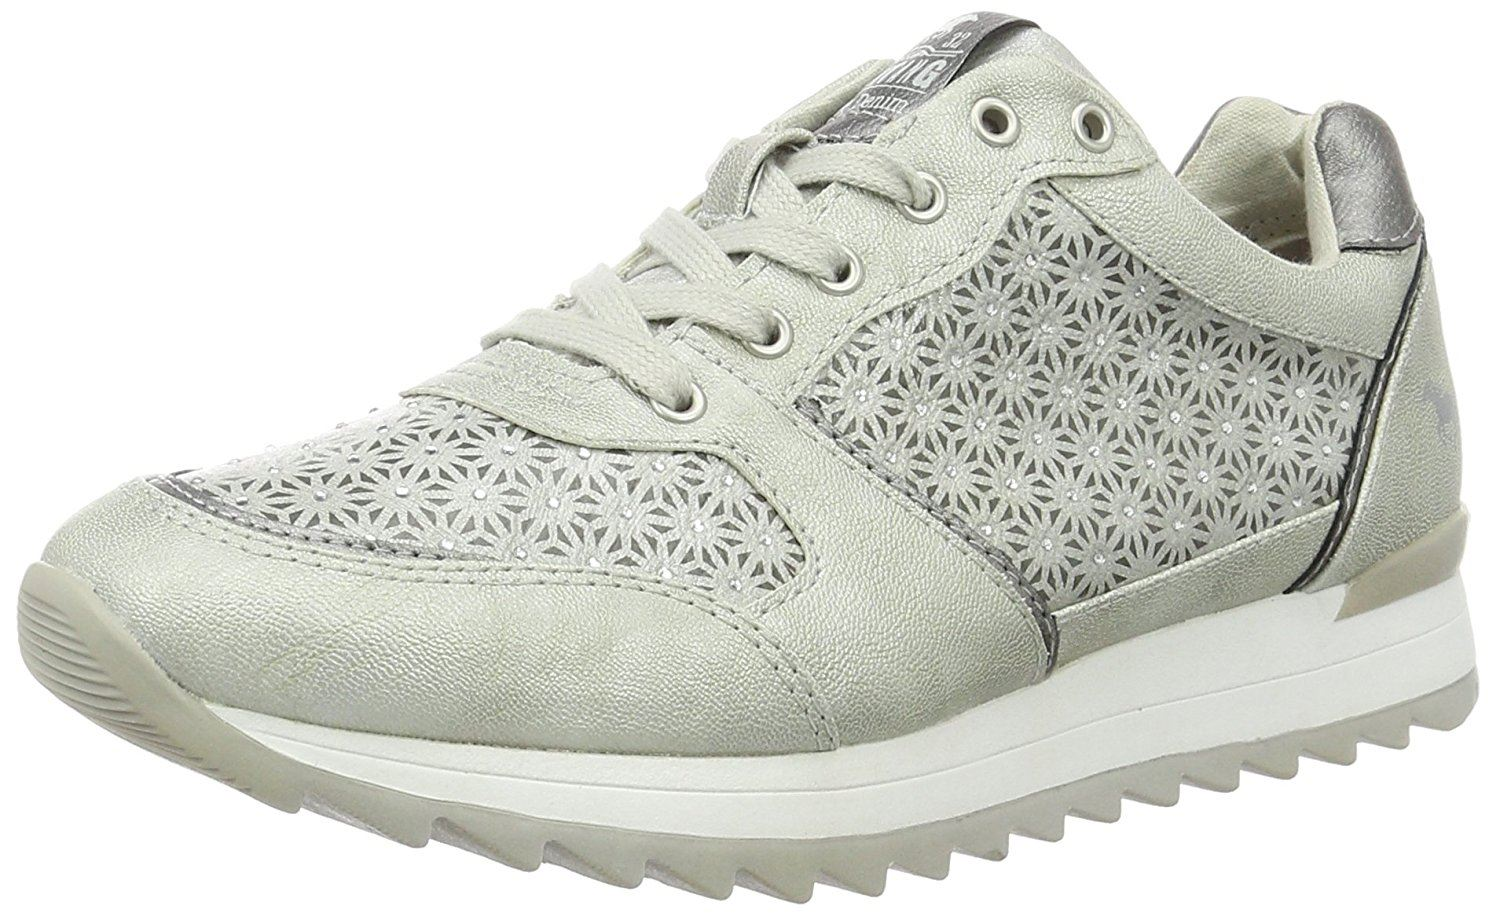 Womens 1241-301-21 Low-Top Sneakers Mustang e2myYTmWC